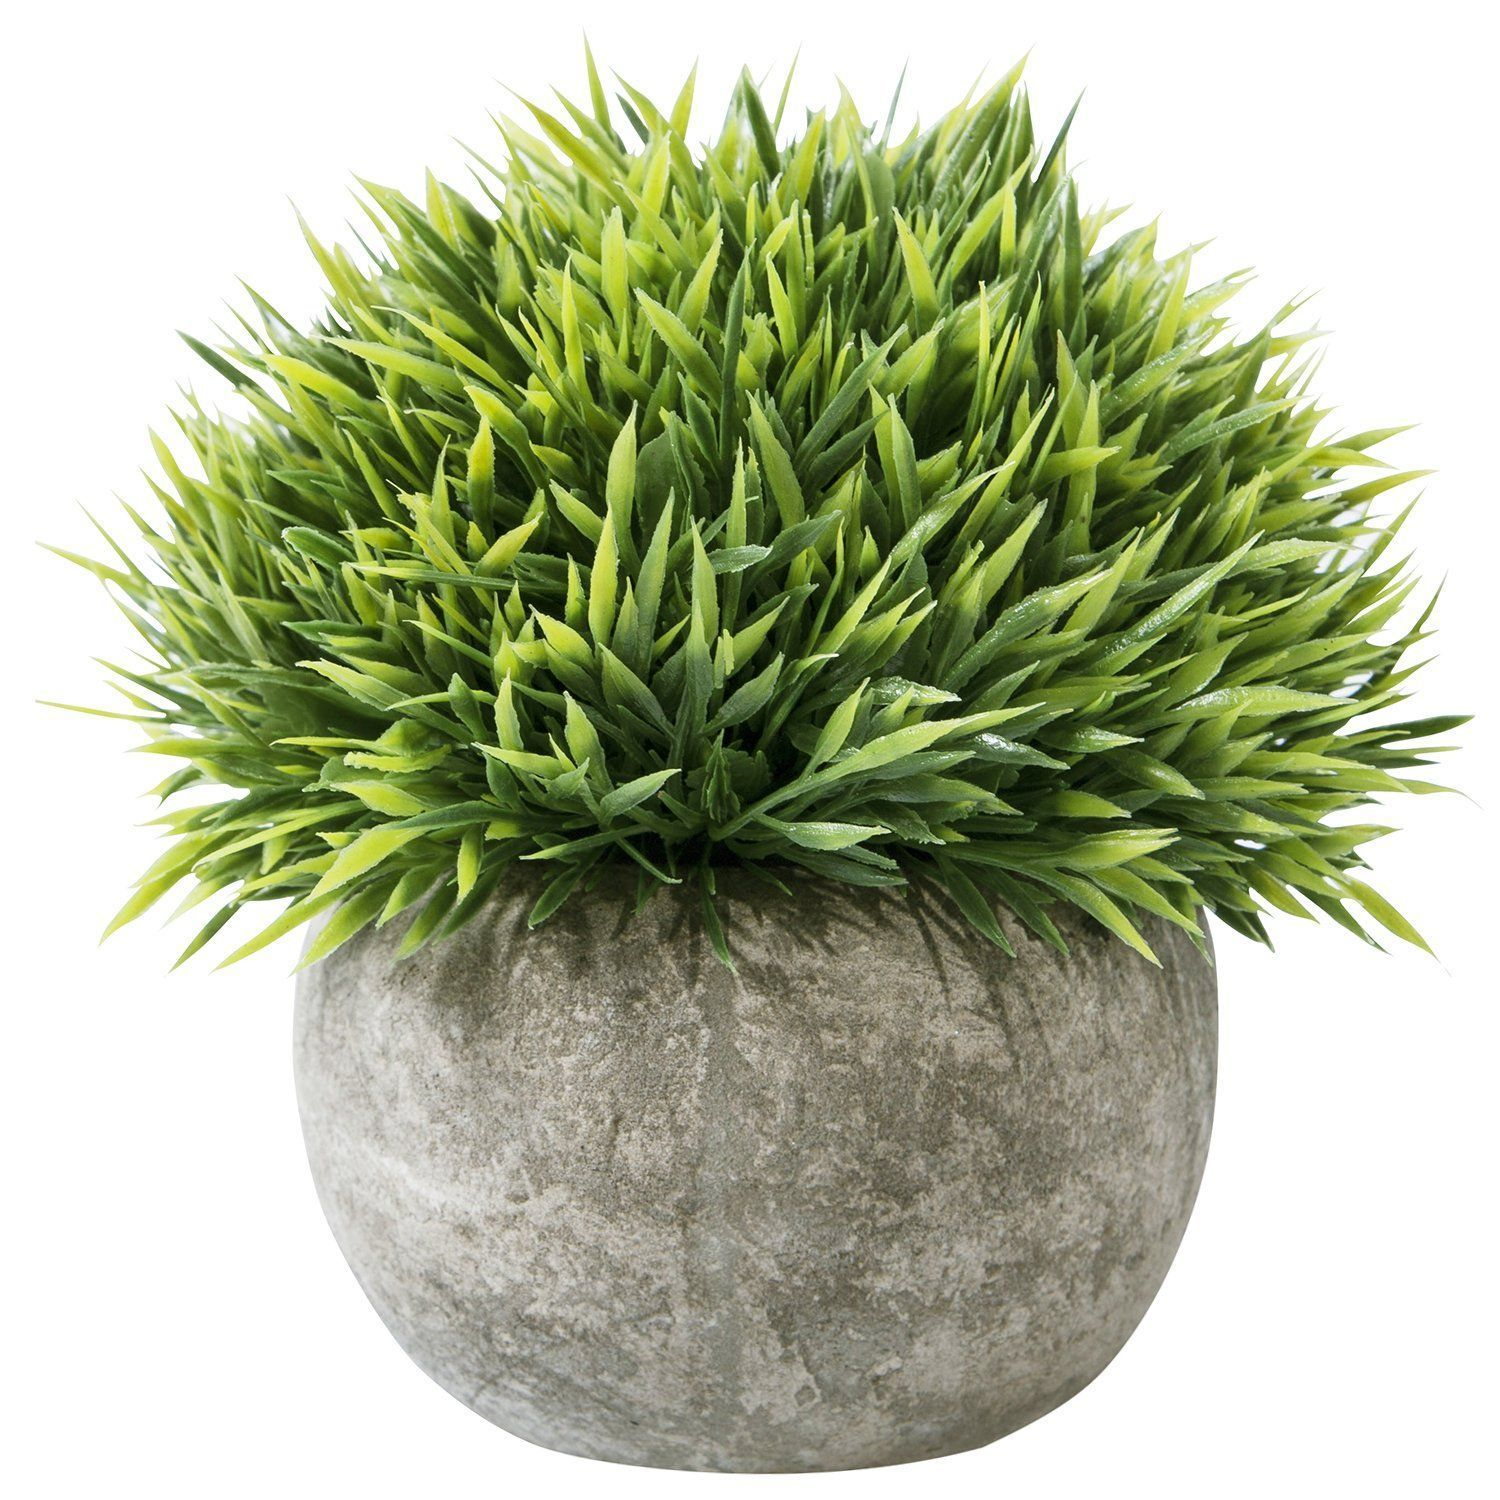 Leyaron Mini Plastic Fake Green Grass Small Artificial Potted Plants For Home Decor And Office Artif Fake Plants Decor Topiary Plants Artificial Potted Plants